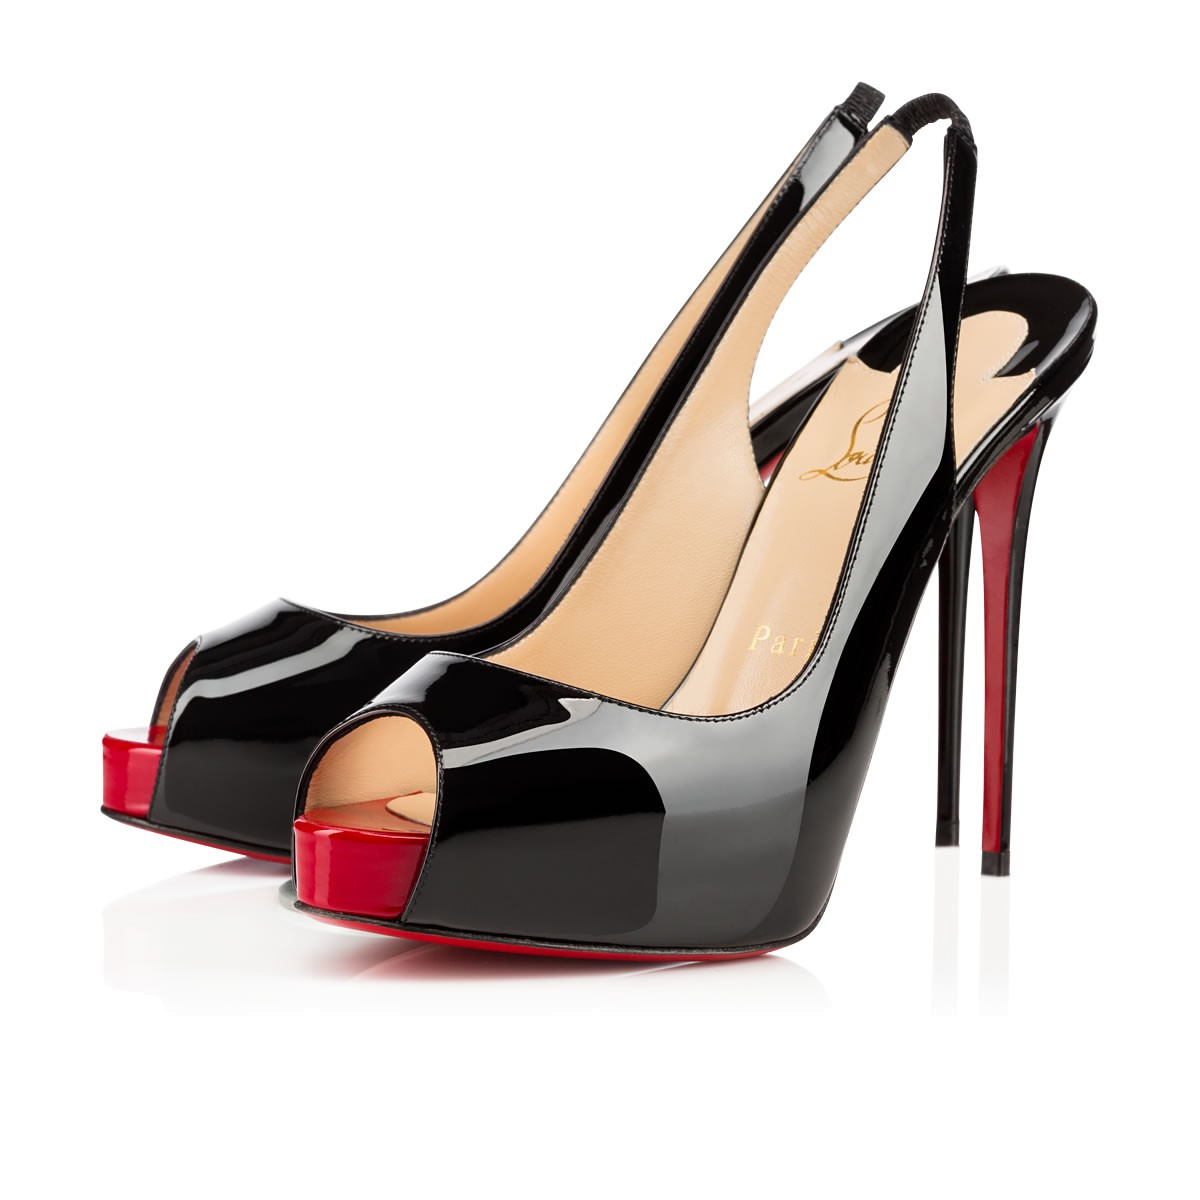 christian louboutin shoes black and red